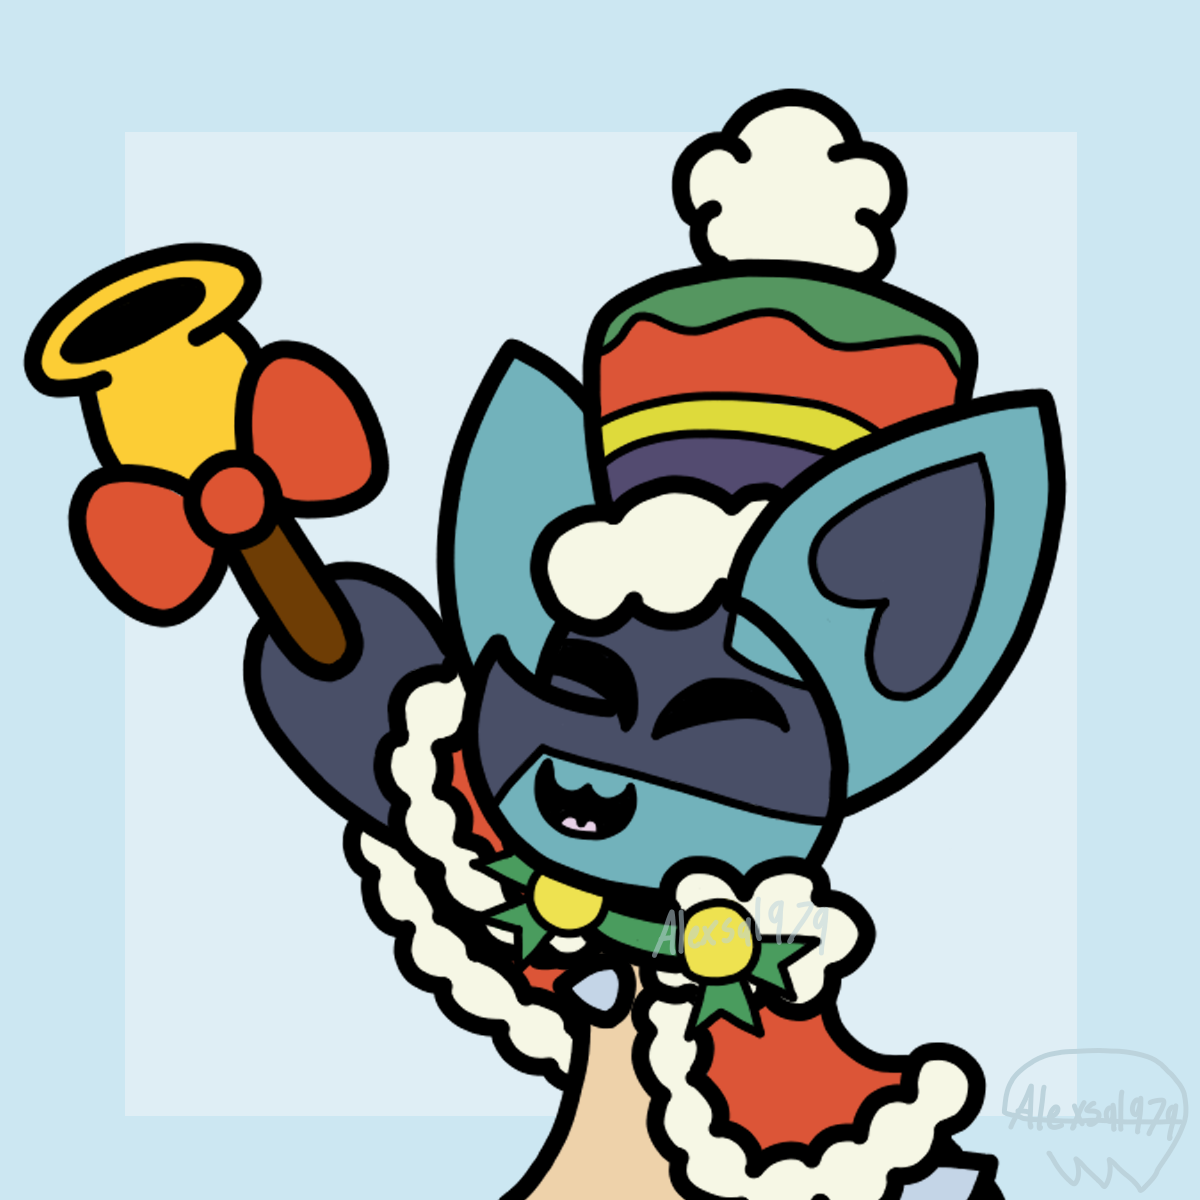 Holyday lucario Wtermark.png